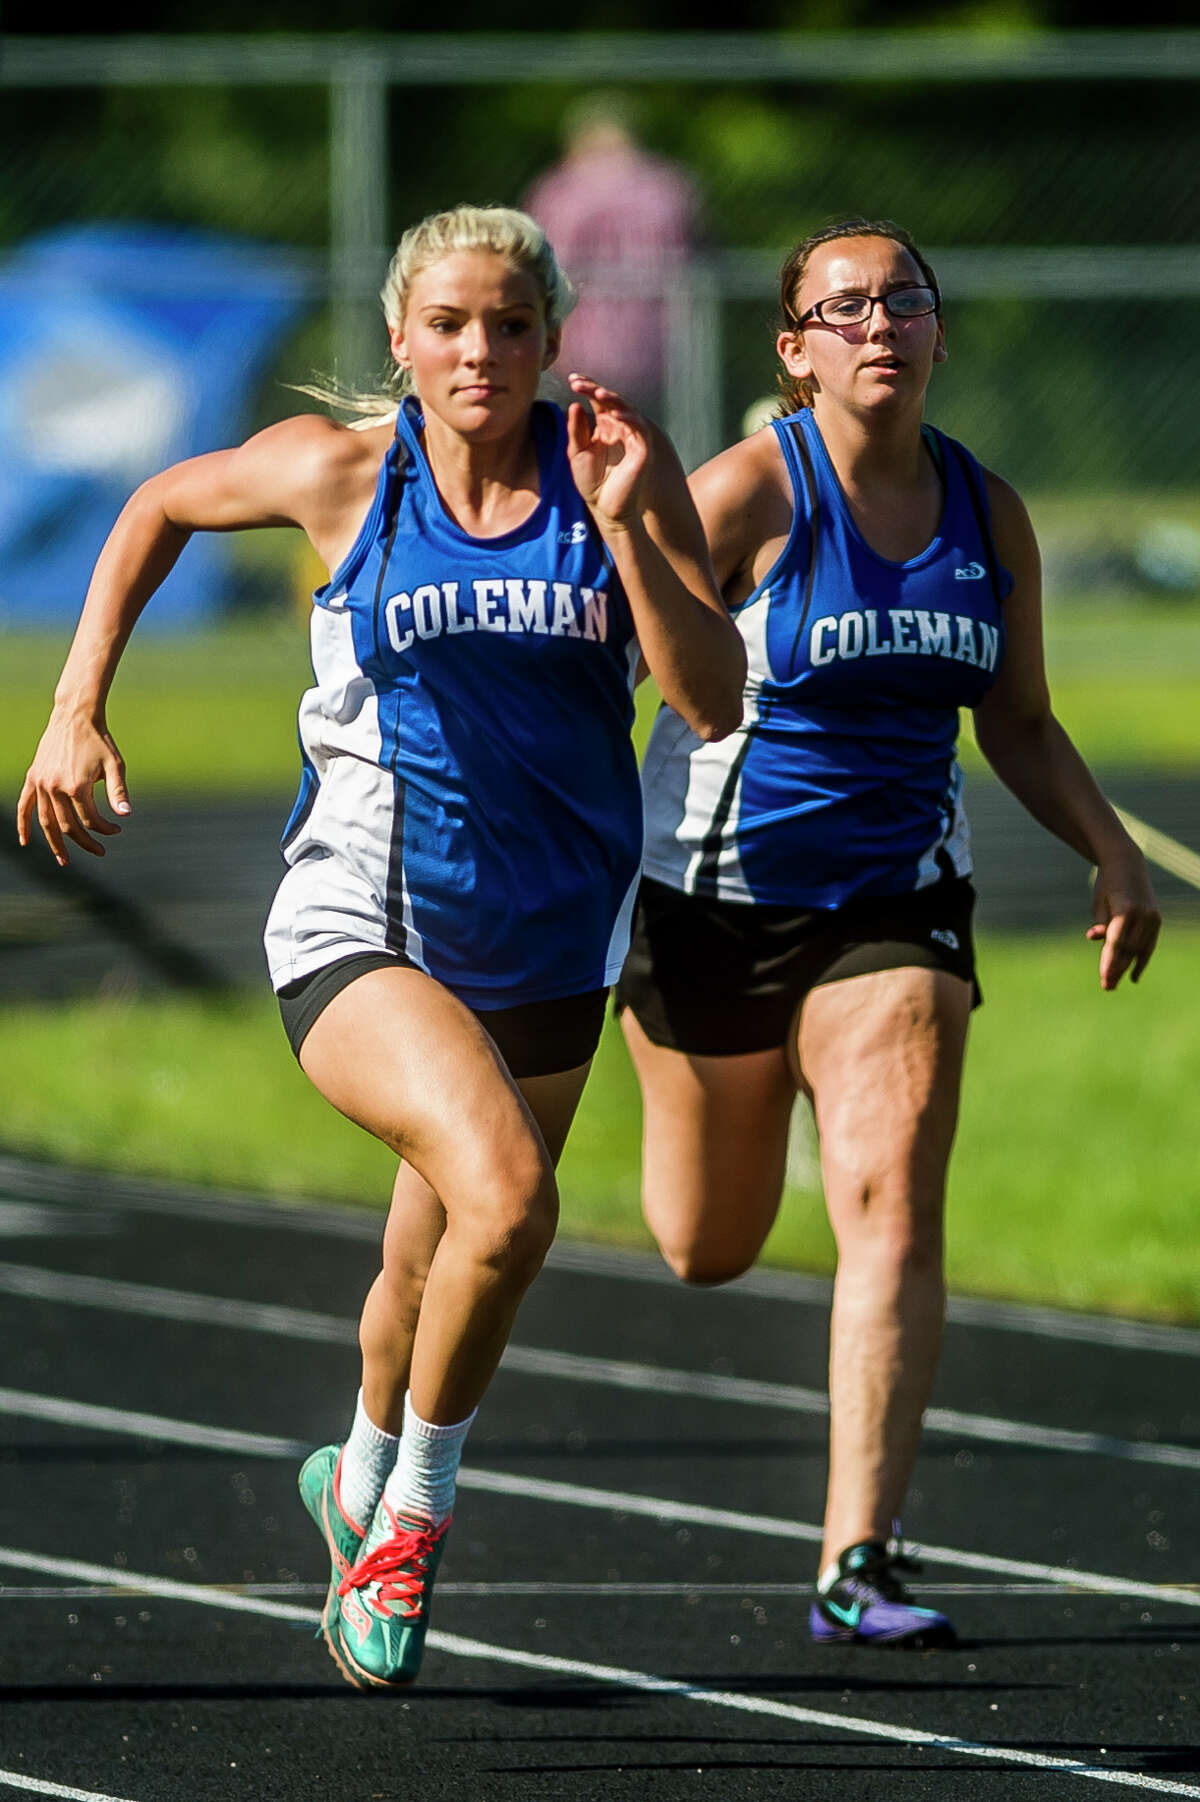 Coleman junior Makailyn Monson, left, and sophomore Brianna Guzman, right, compete in the 100-meter dash during a track and field meet on Wednesday, May 23, 2018 at Coleman High School. (Katy Kildee/kkildee@mdn.net)